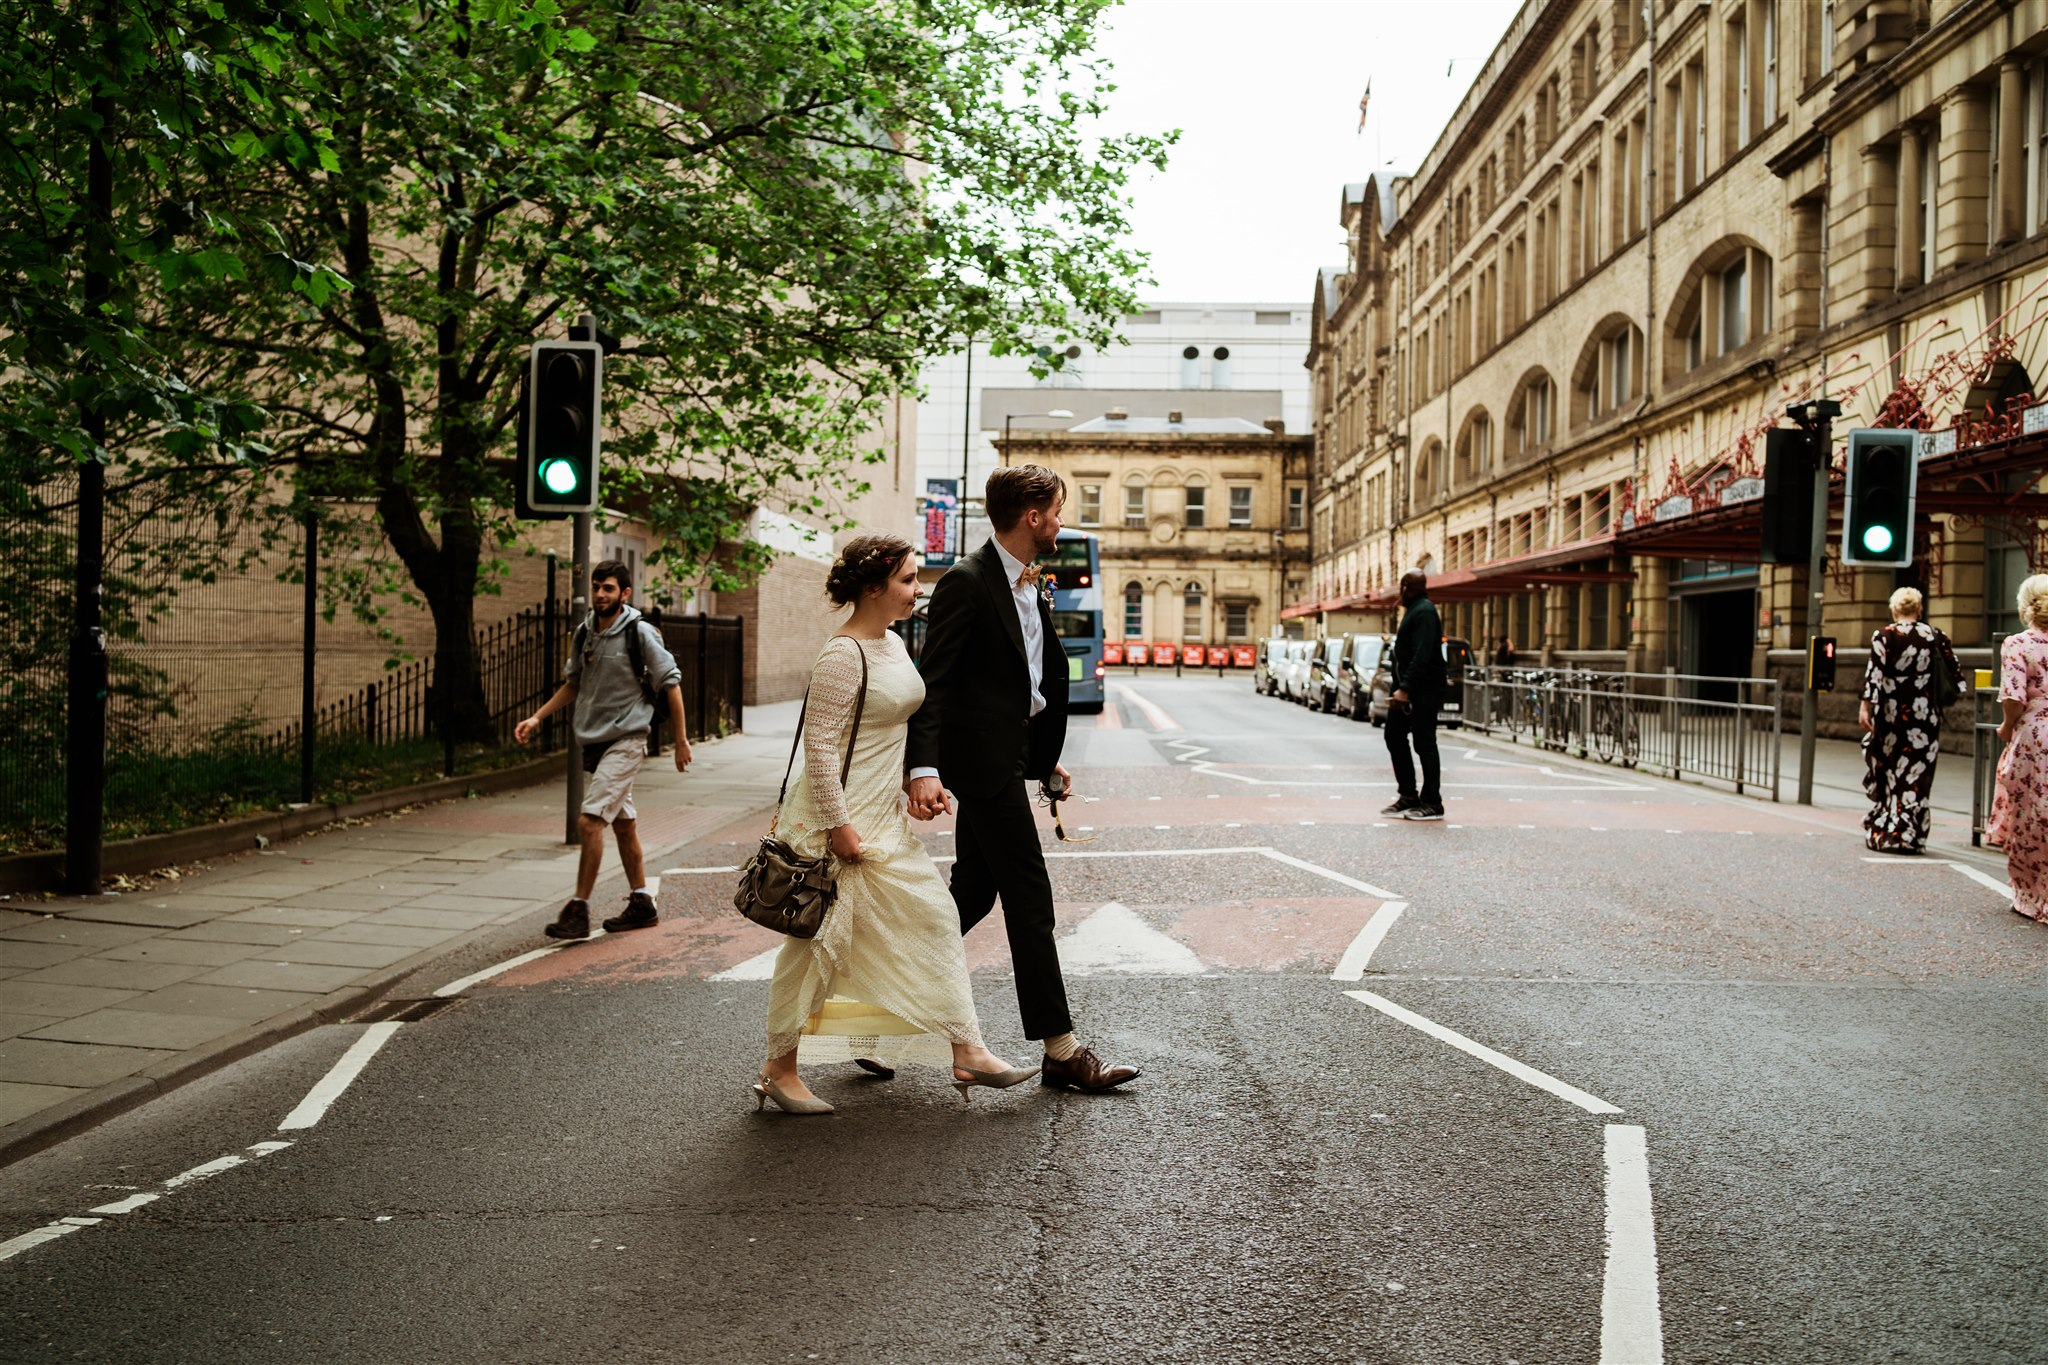 A newly married couple cross the street after leaving their wedding ceremony